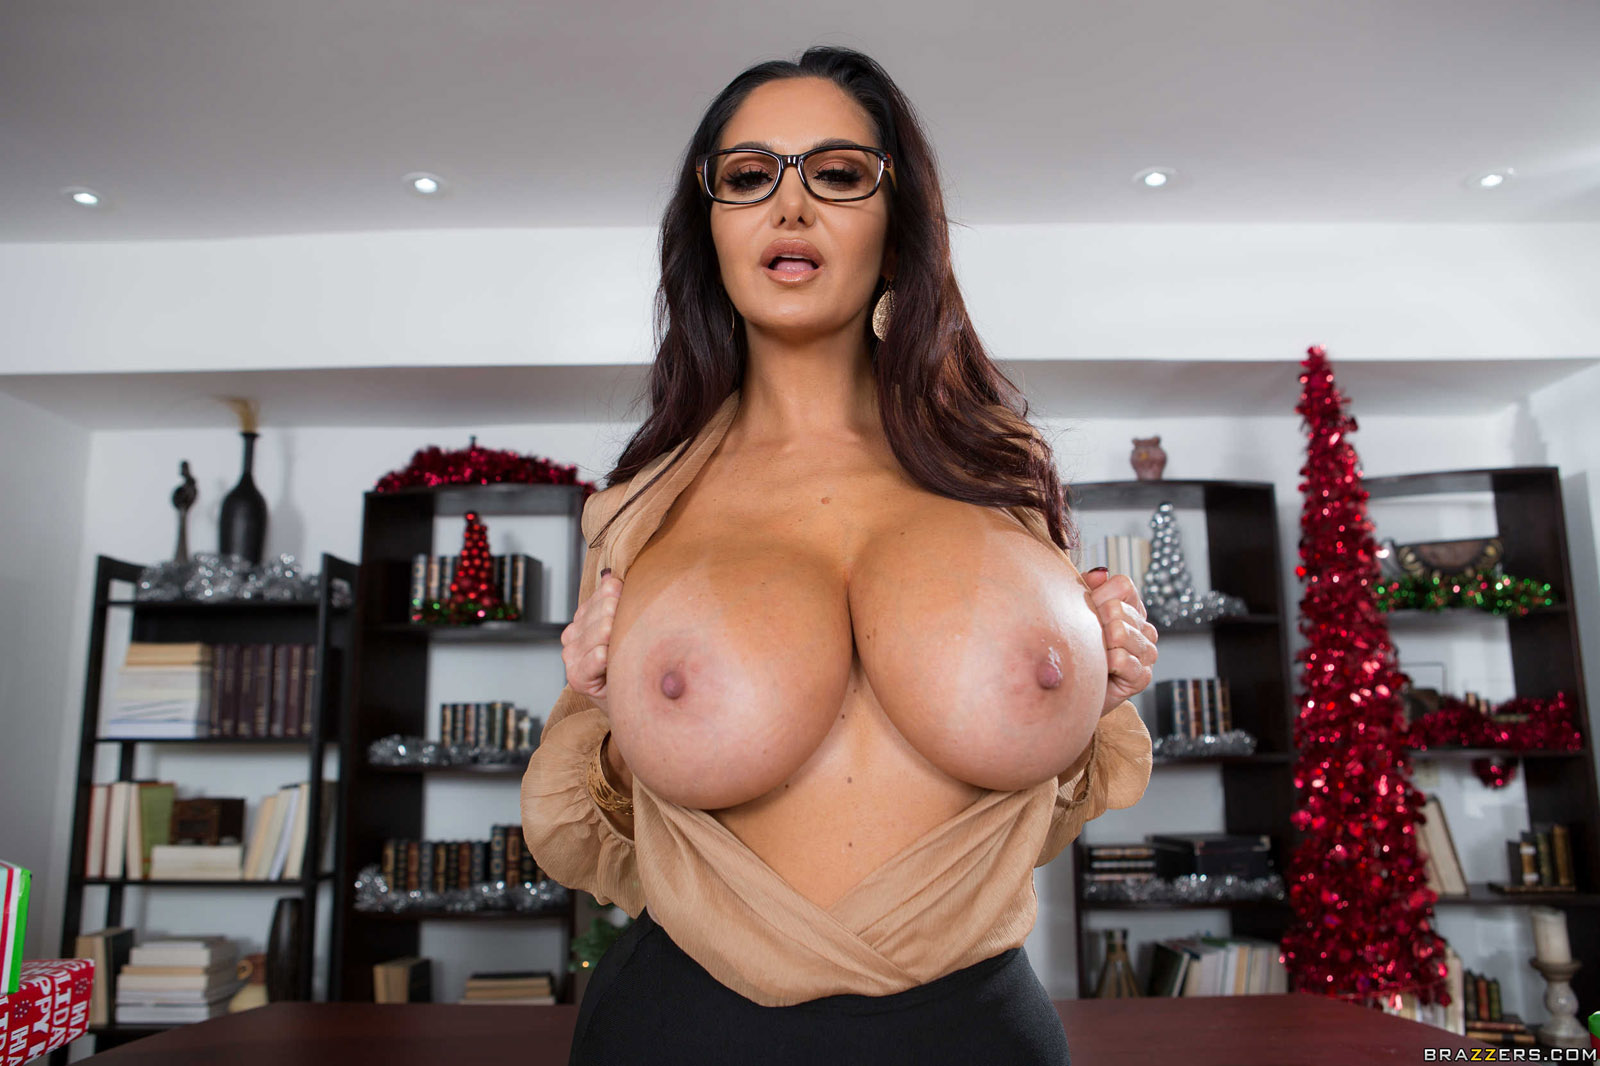 Ava Addams Christmas.Ava Addams Office 4 Play Christmas Brazzers Foxhq